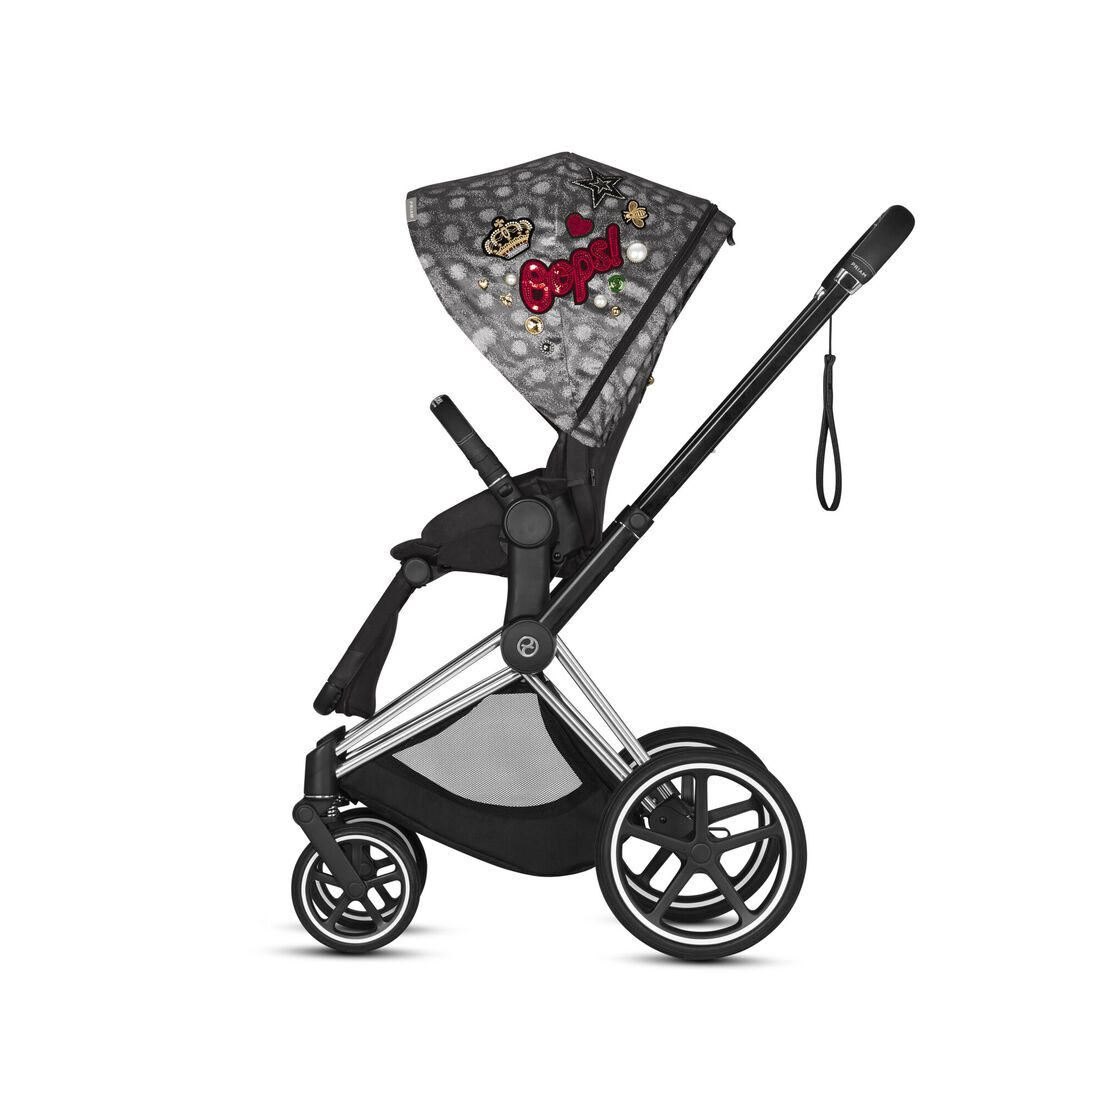 CYBEX Priam Seat Pack - Rebellious in Rebellious large image number 3